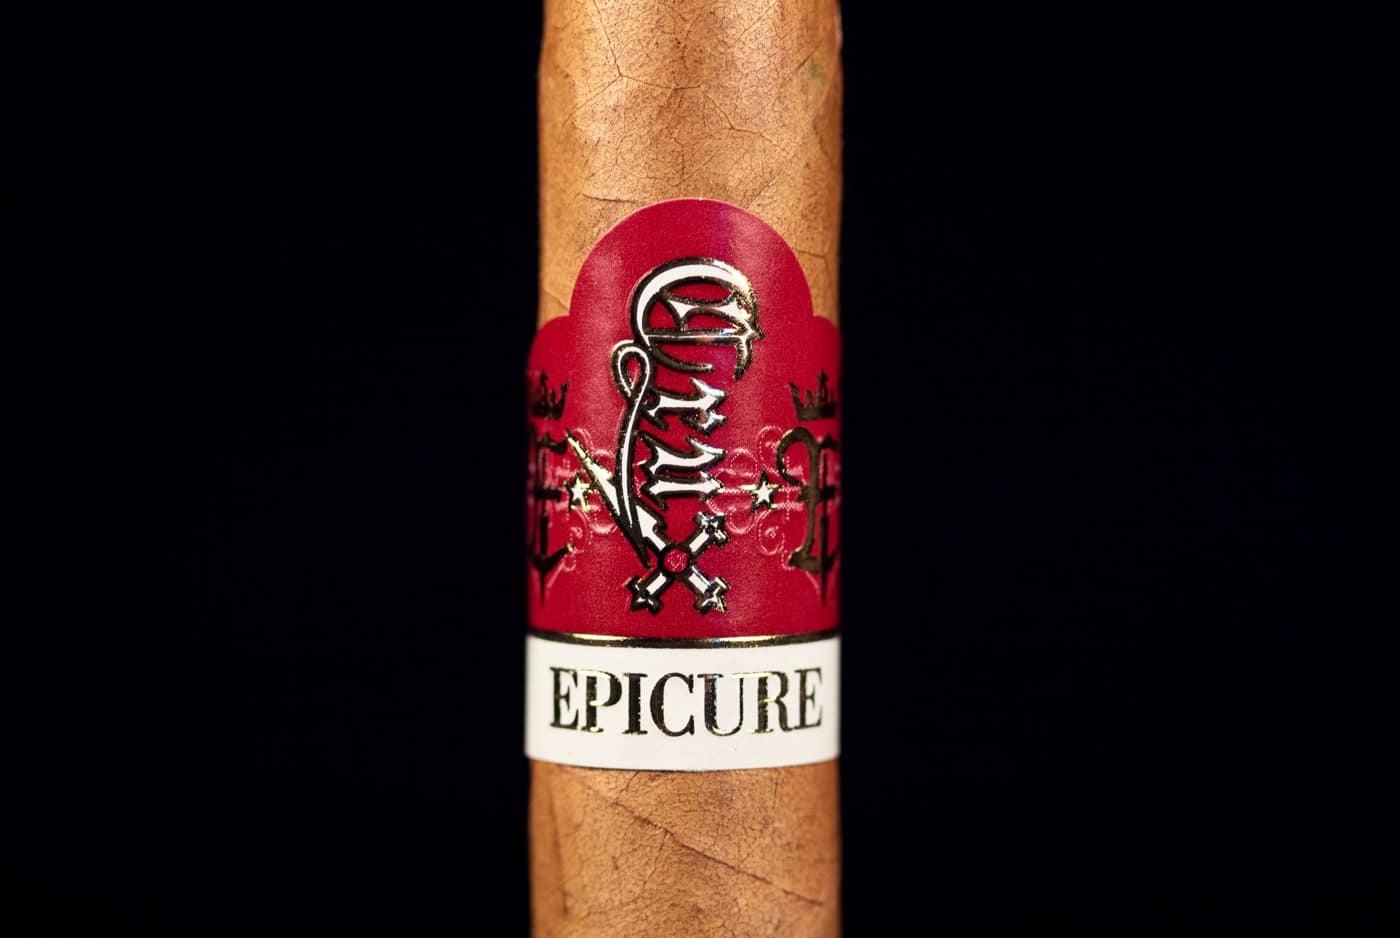 Crux Epicure Robusto cigar review